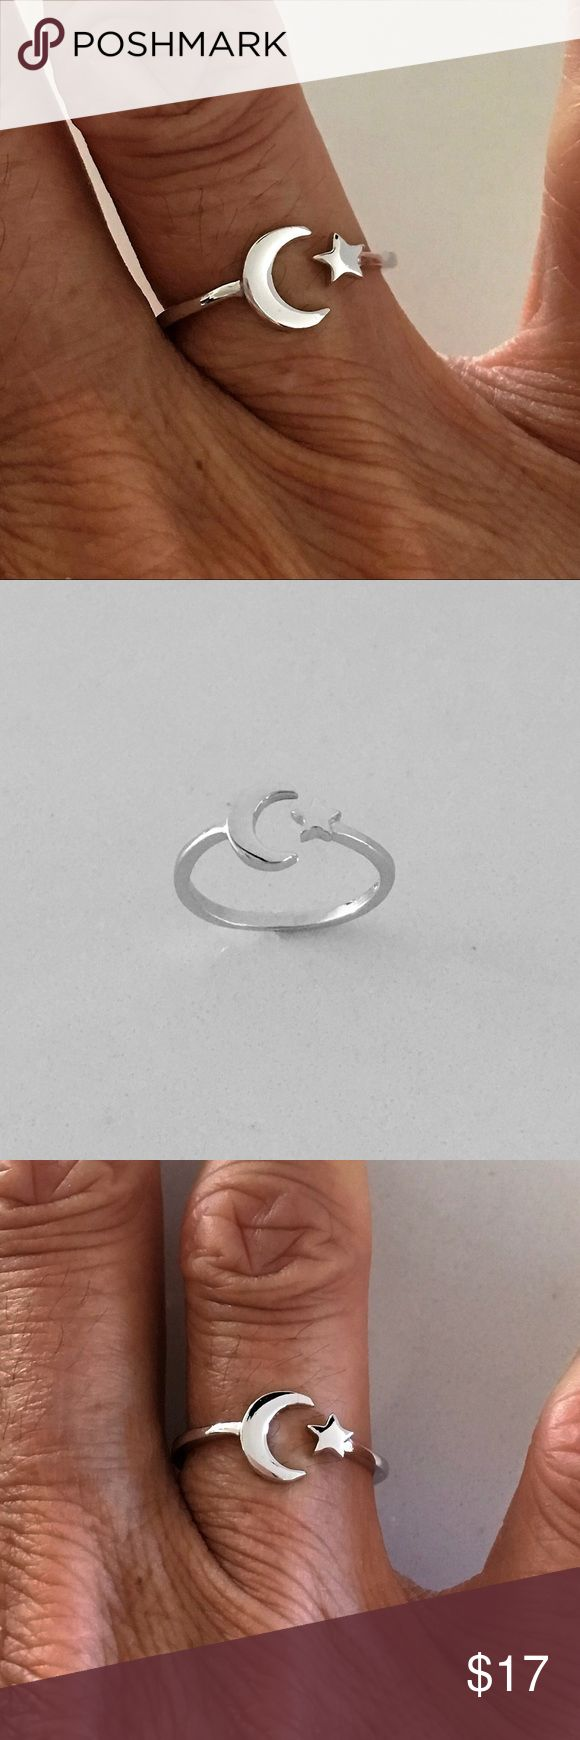 Sterling Silver Moon and Star Ring Sterling Silver Moon and Star Ring, Toe Ring, Midi Ring, Pinky Ring, Index Ring, Thumb Ring, 925 Sterling Silver, Face Height: 8 mm, Finish: High Polish, Rhodium Plated Jewelry Rings